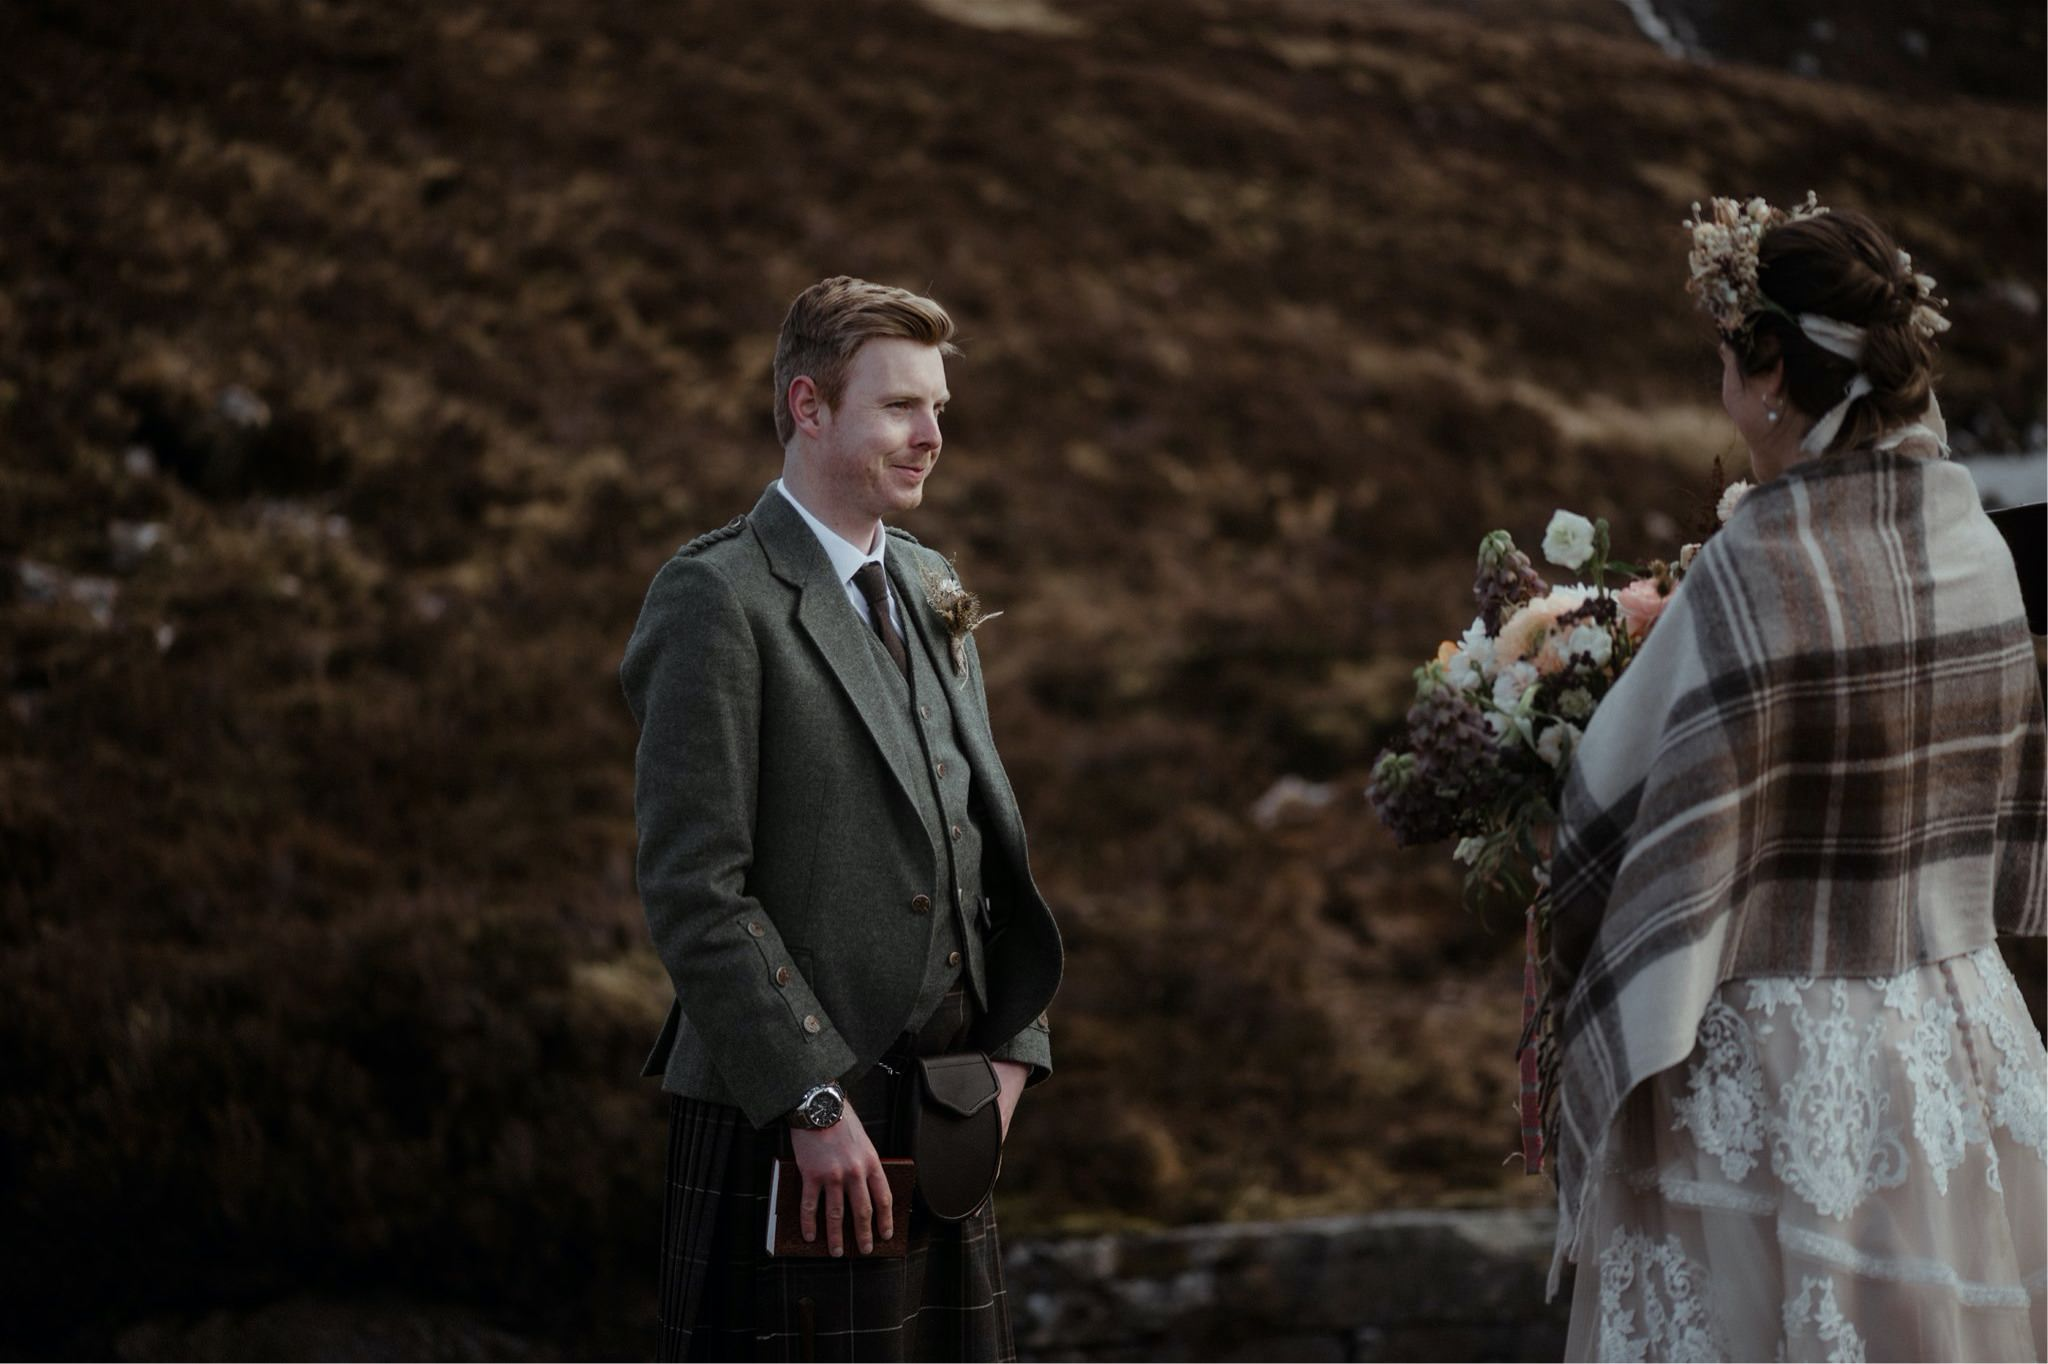 Groom looking at bride lovingly during a Scotland elopement wedding in Assynt